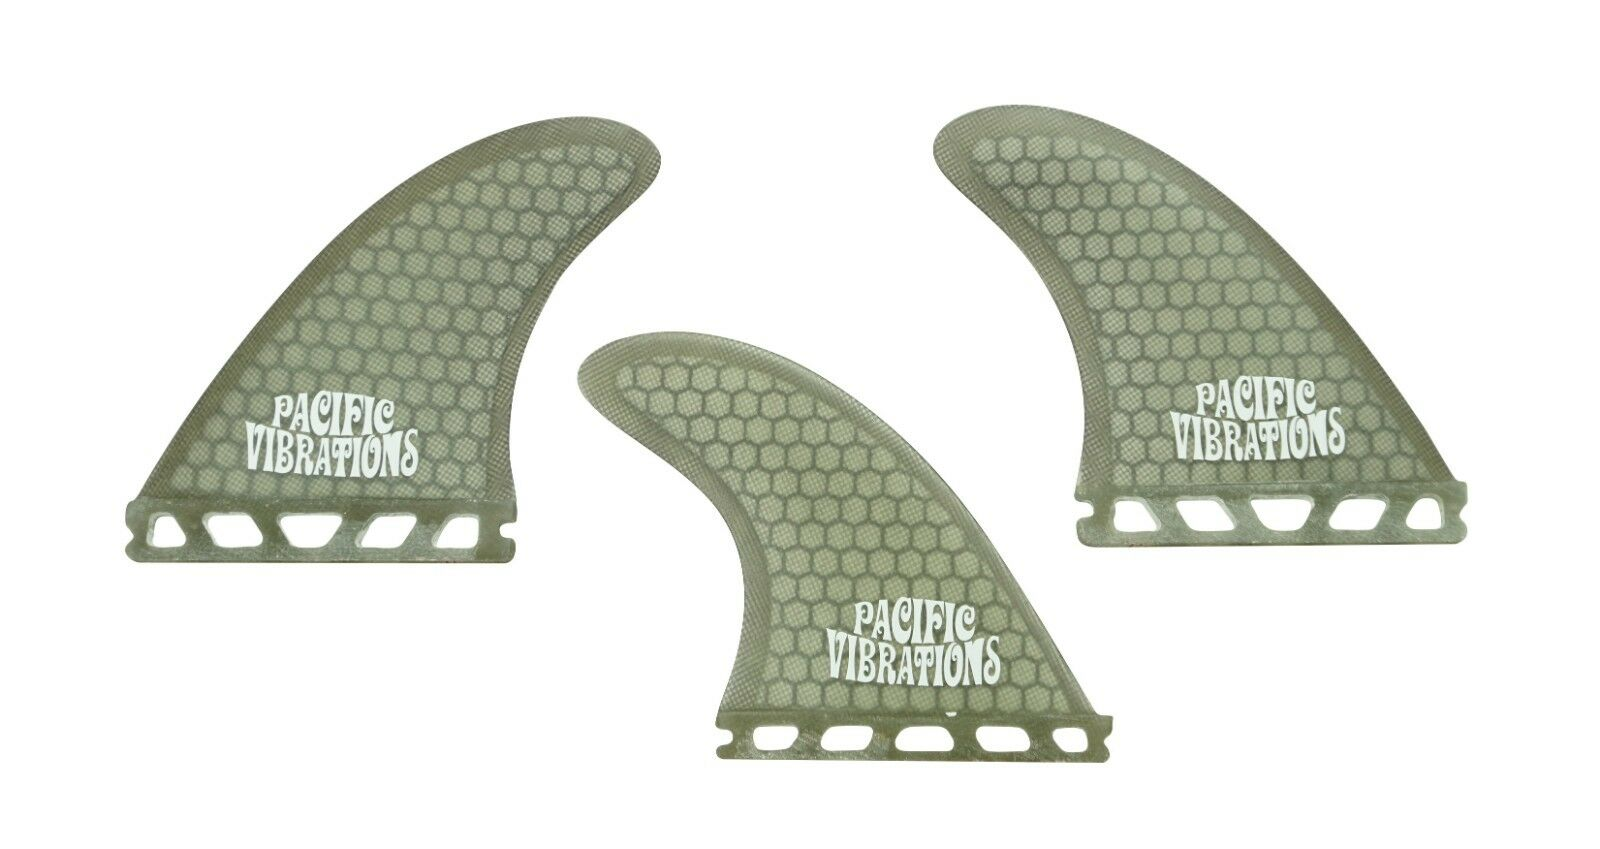 PACIFIC VIBRATIONS FUTURES  2.1 fins Kelly Slater TRI 3 SURFBOARD FINS SMOKE